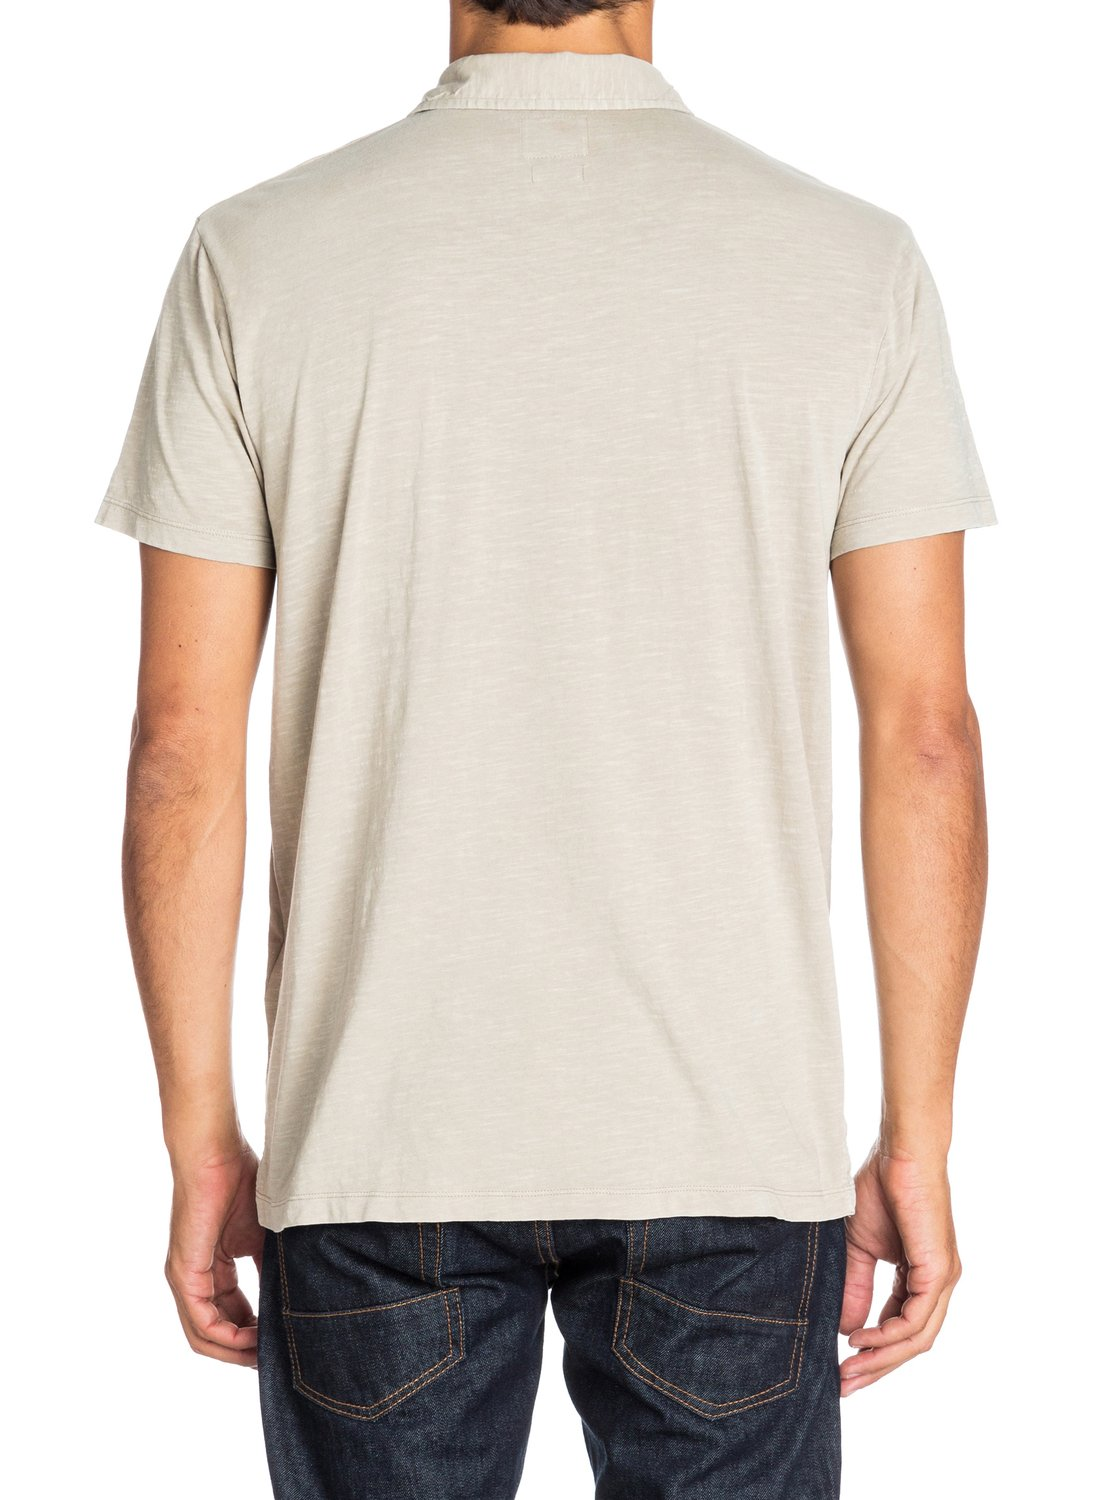 haworth men Find high quality printed haworth t-shirts at cafepress see great designs on styles for men, women, kids, babies, and even dog t-shirts free returns 100% money back guarantee fast shipping.